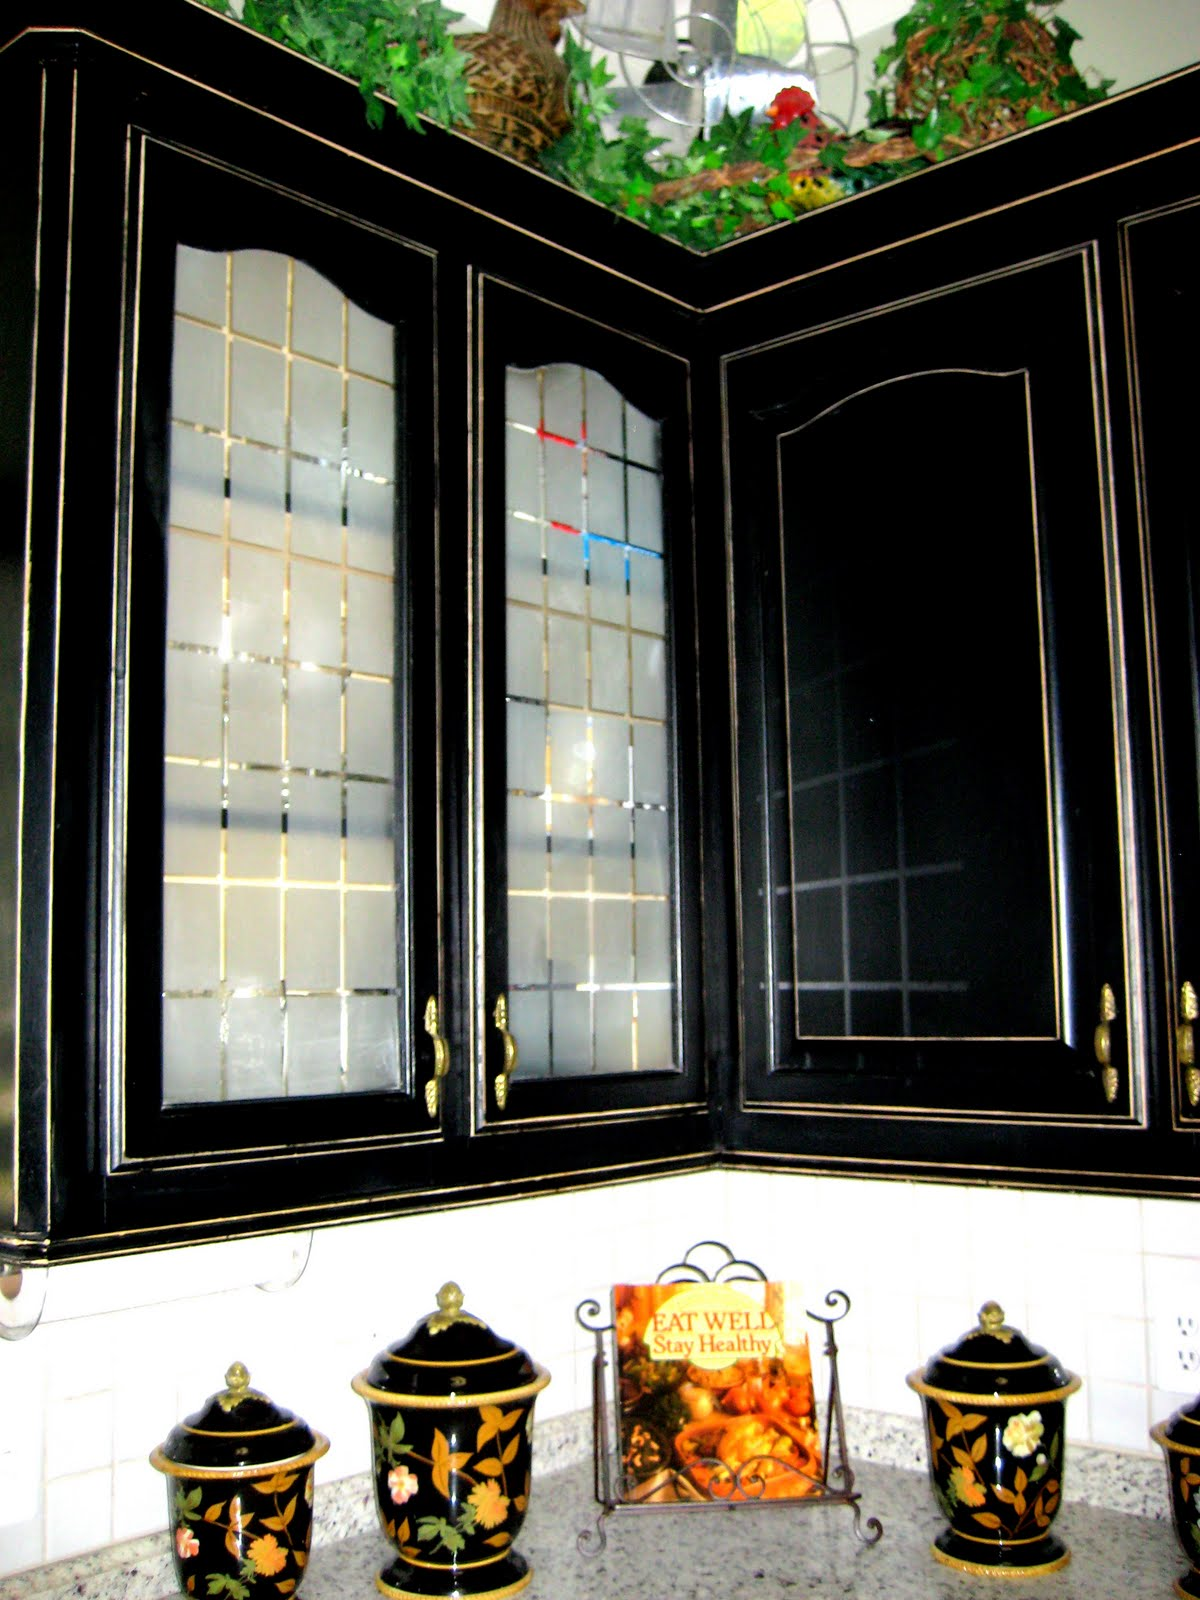 frosted glass kitchen cabinet doors oxo supplies mom inspiration 3 etched c r a f t